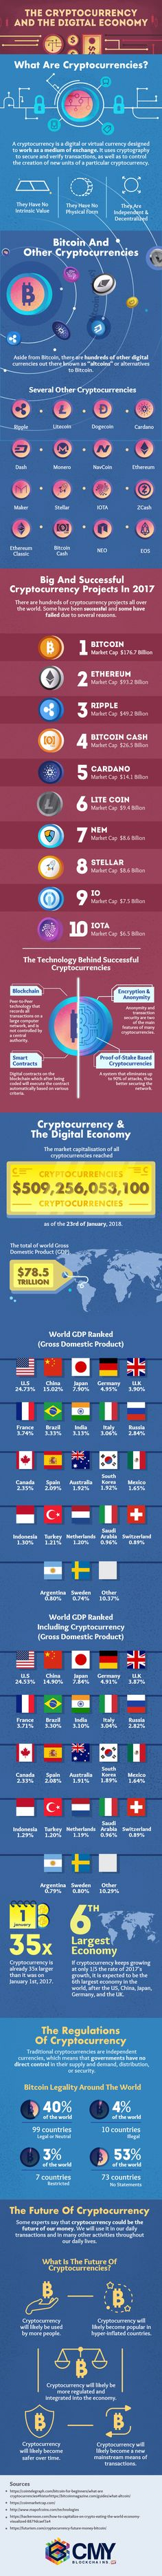 The Cryptocurrency and the Digital Economy - #infographic